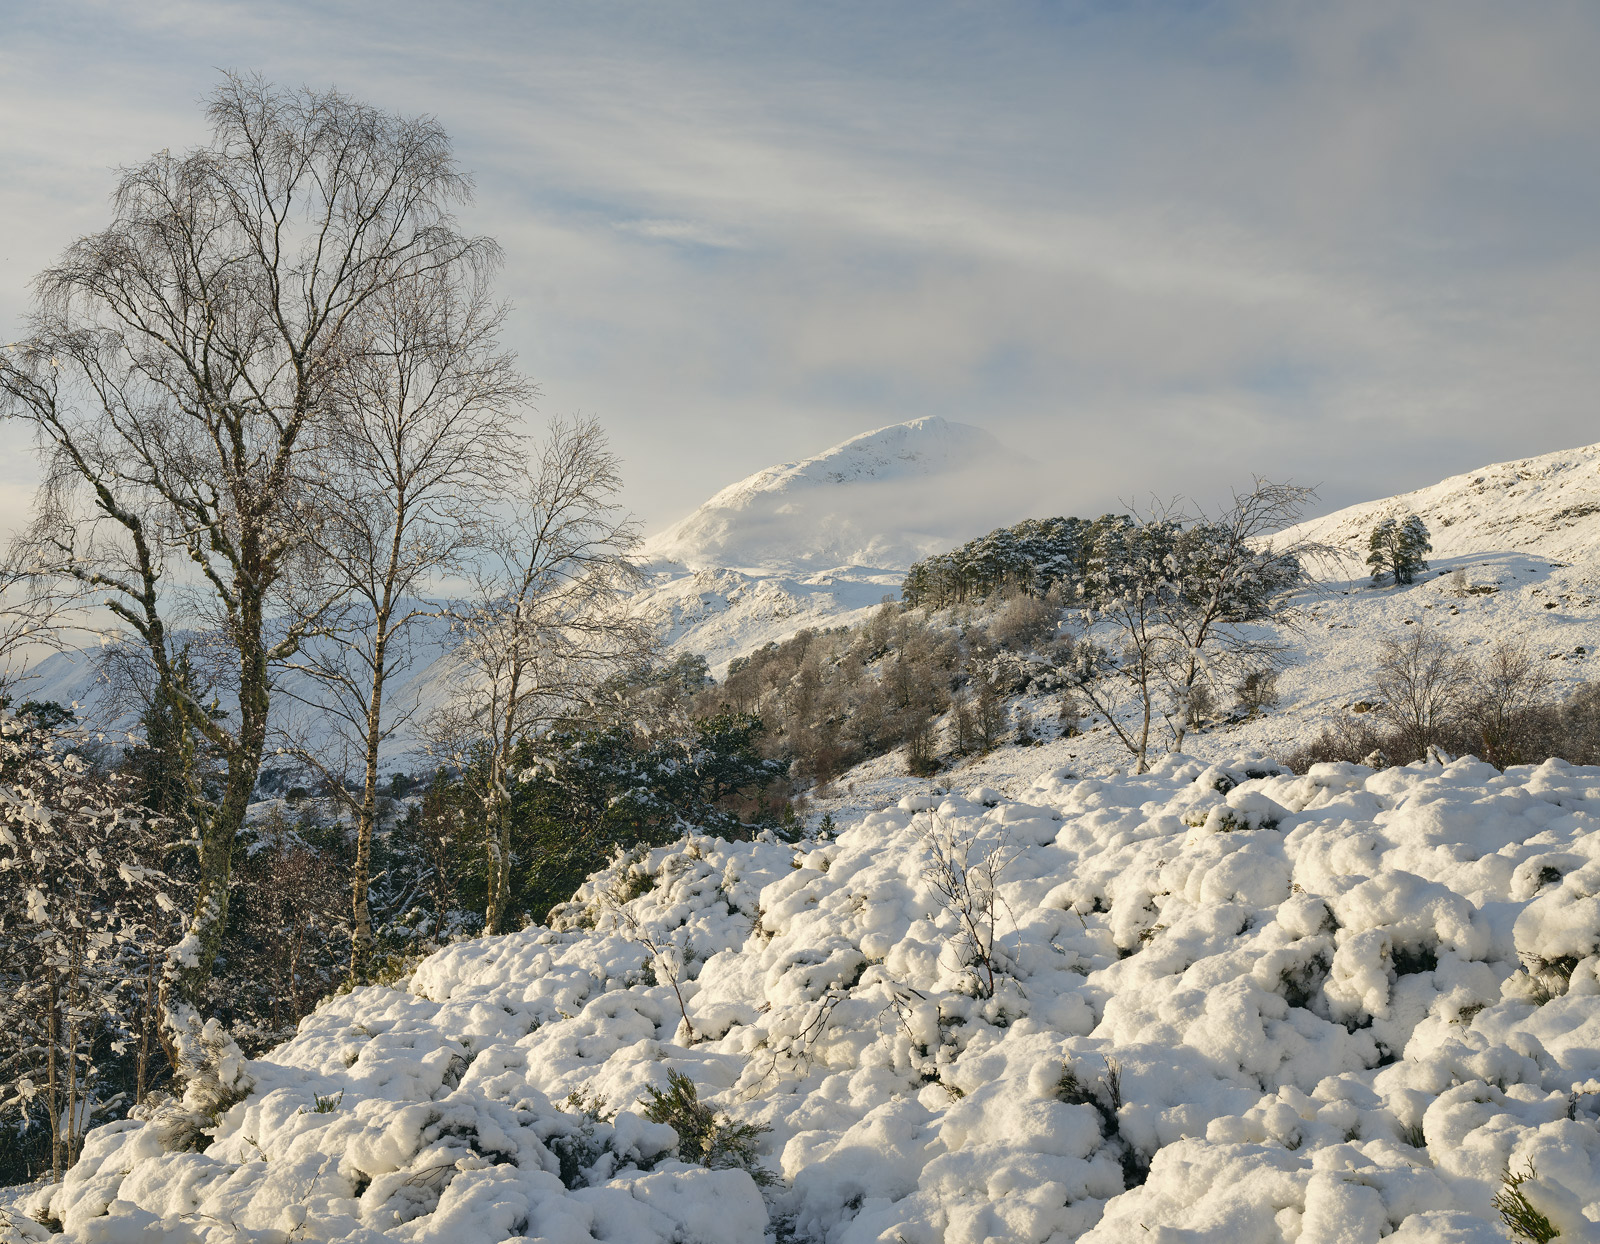 At the very end of the public road that travels through Glen Affric is a superb view of the mountain peaks and on this fabulous...